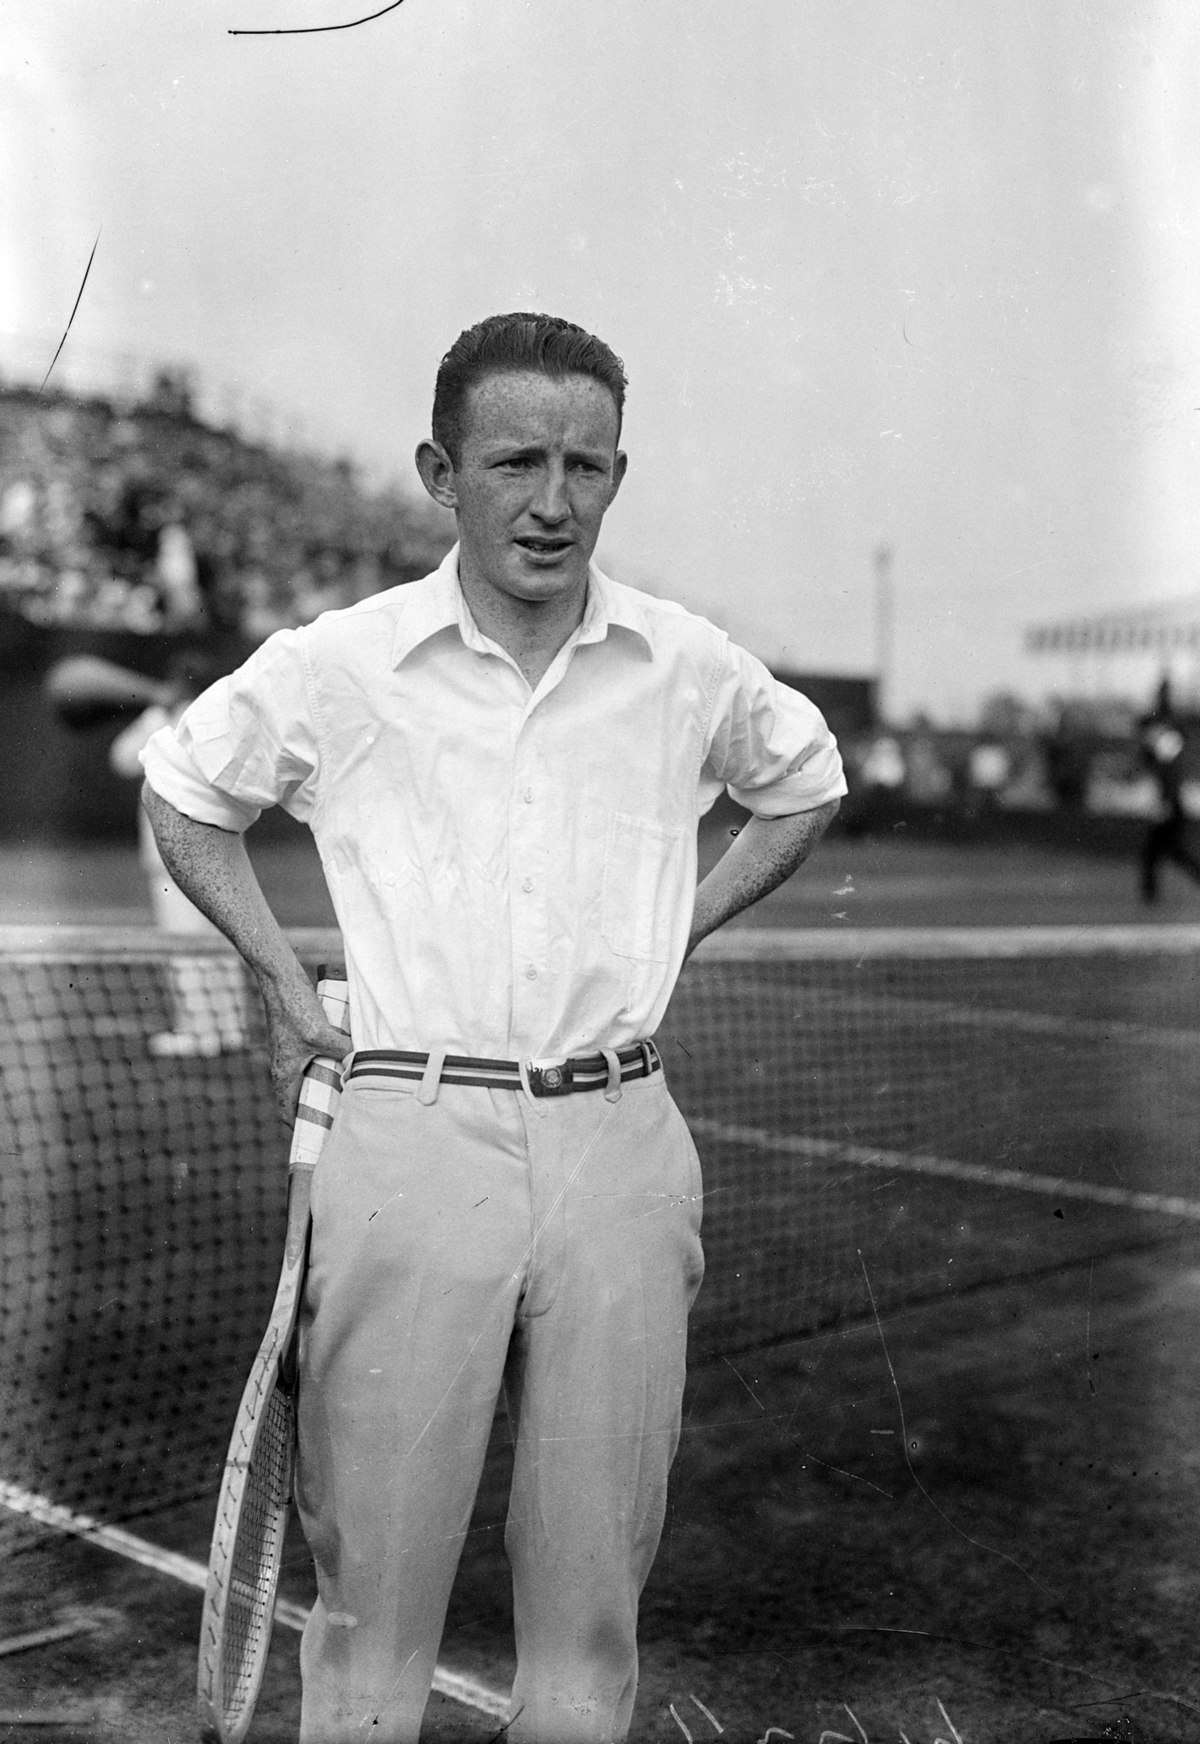 Bill Johnston tennis